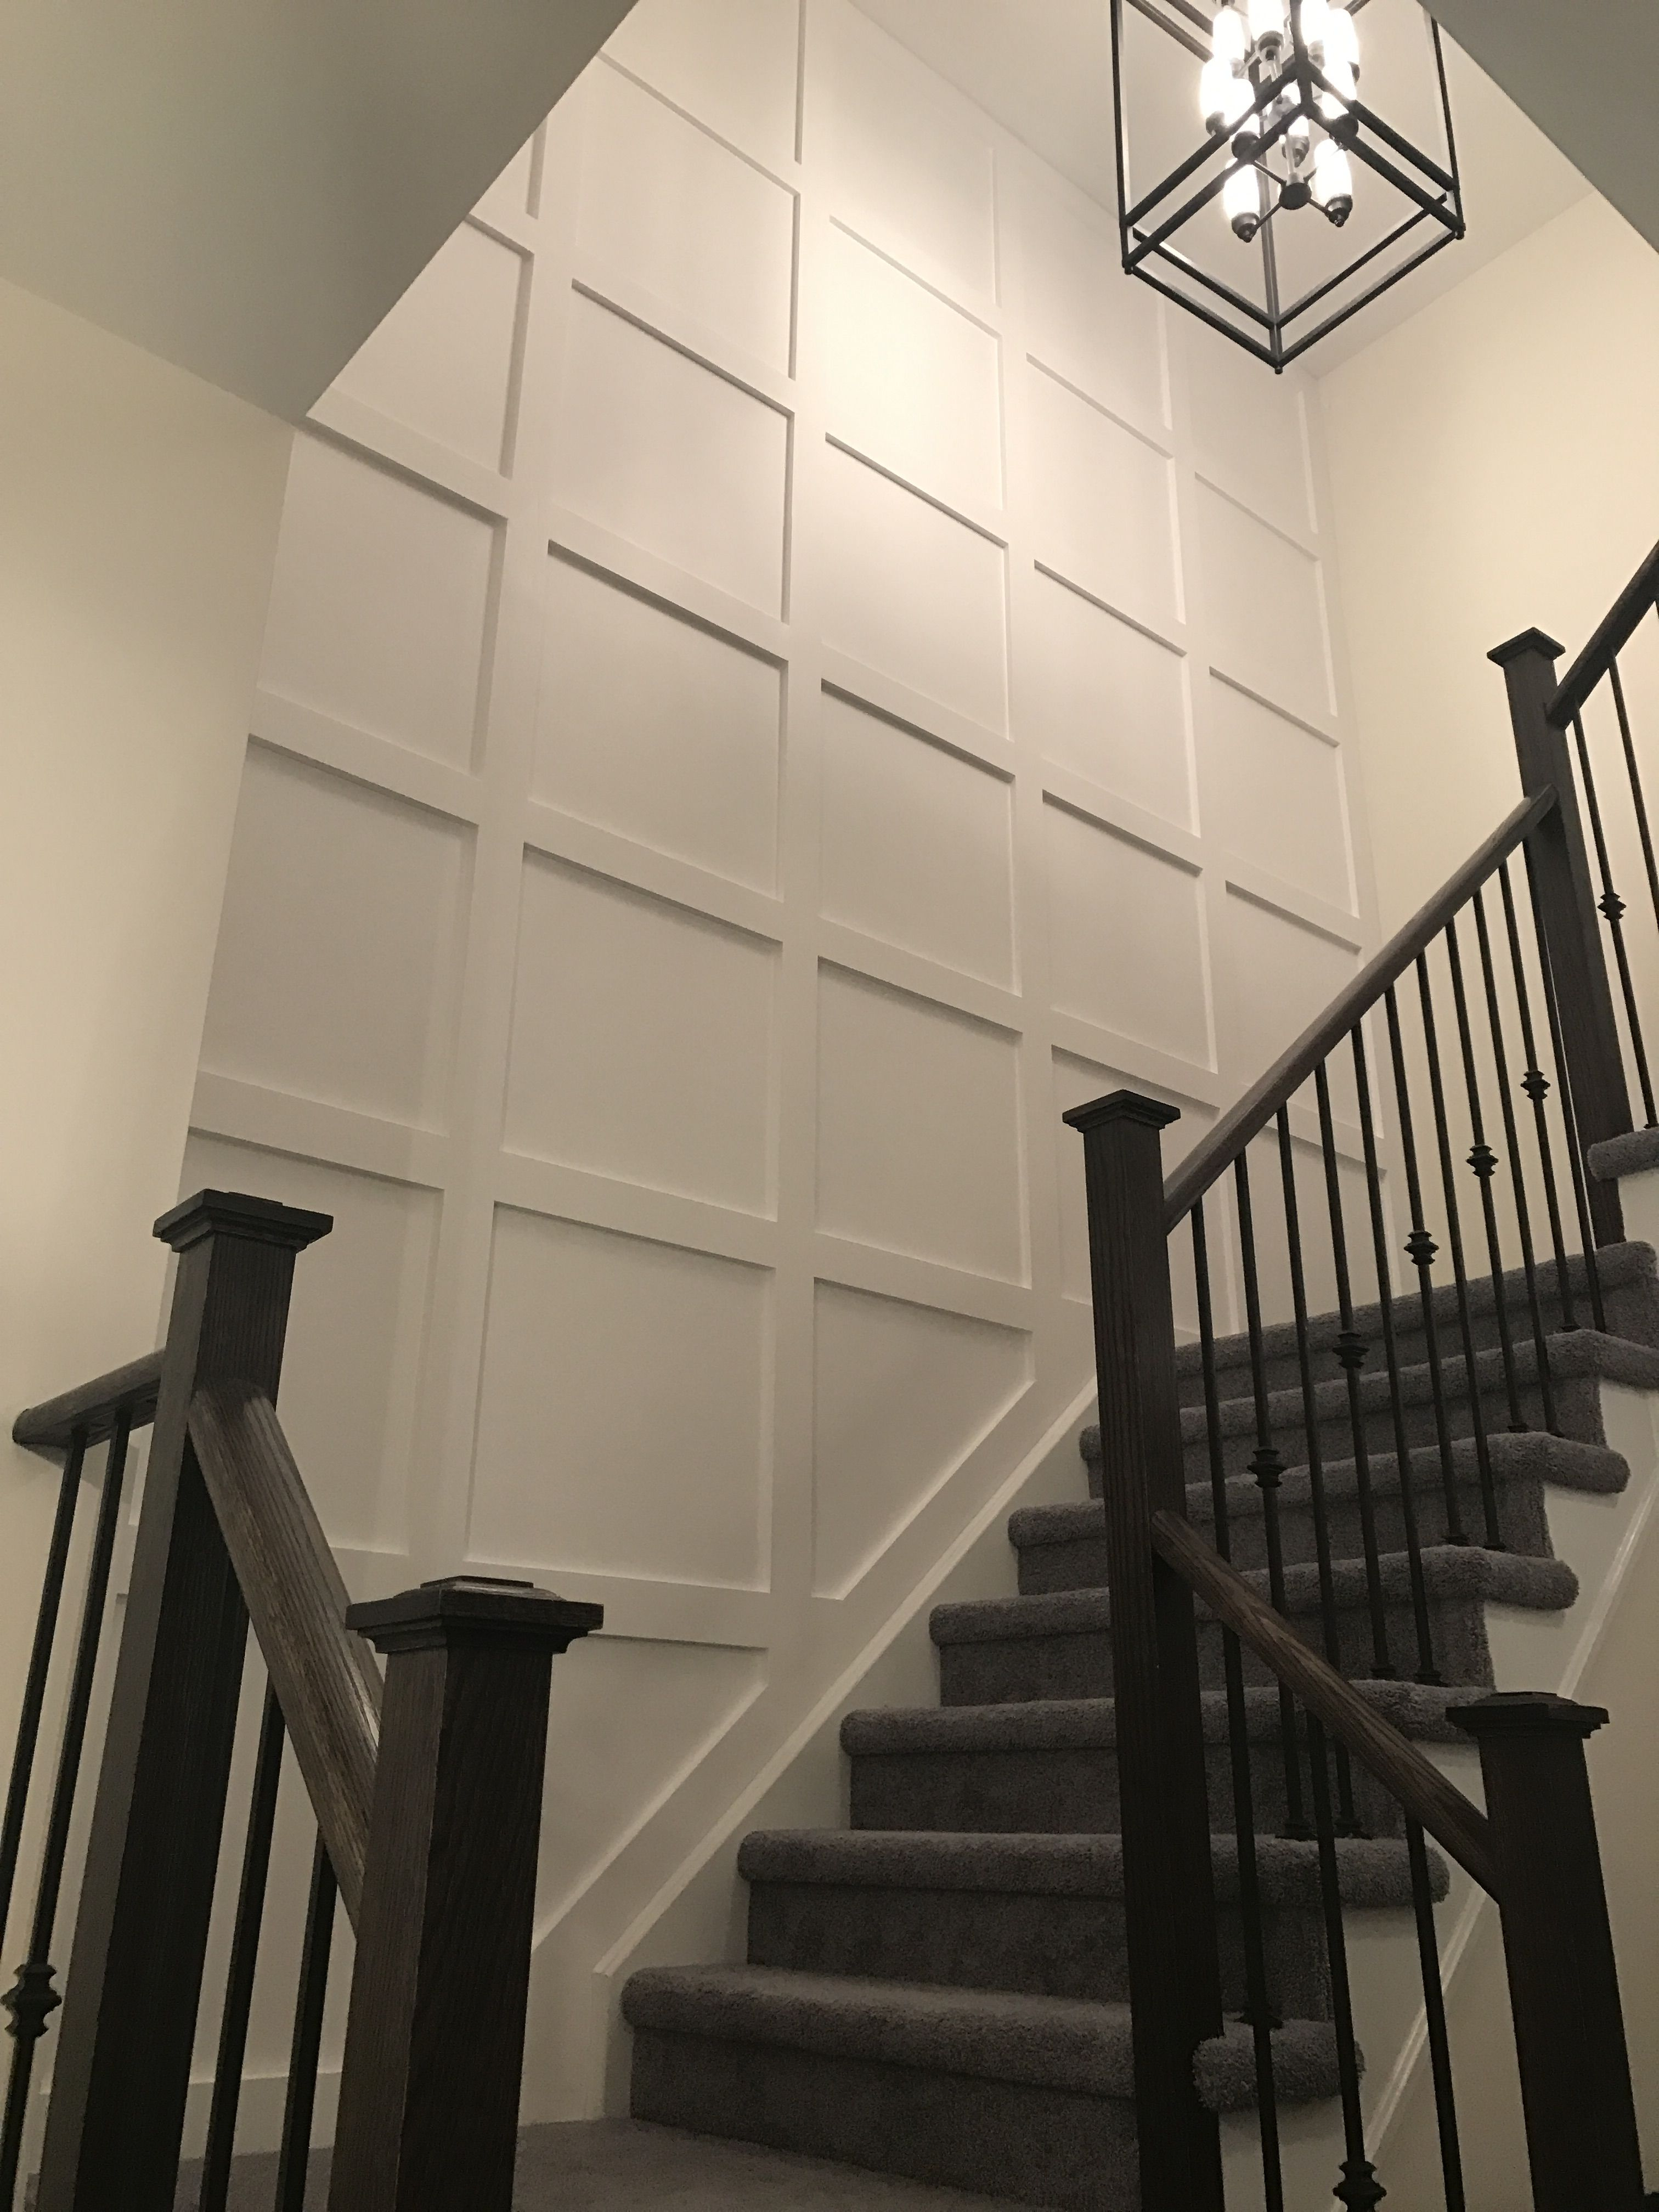 Square Wainscoting In Stairway Wainscoting Wall Stairway Wainscoting Wainscoting Stairs